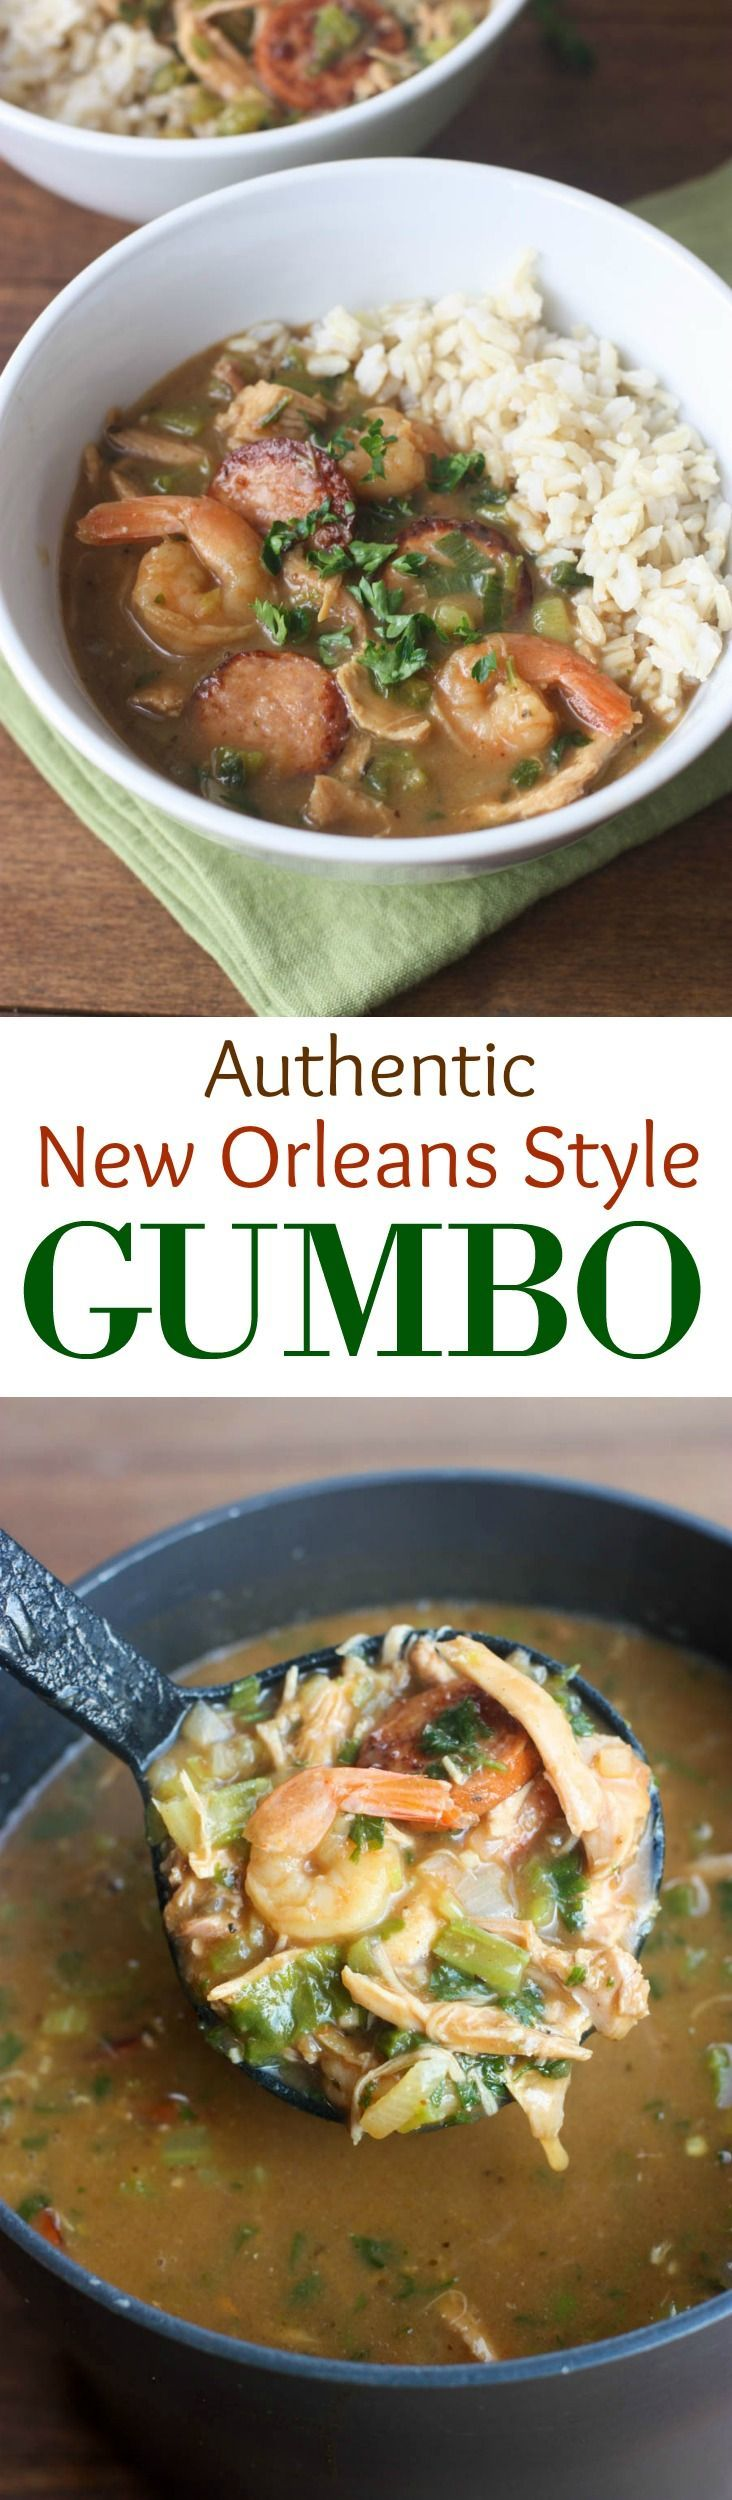 Authentic New Orleans Style Gumbo Recipe Style Gumbo And New Orleans